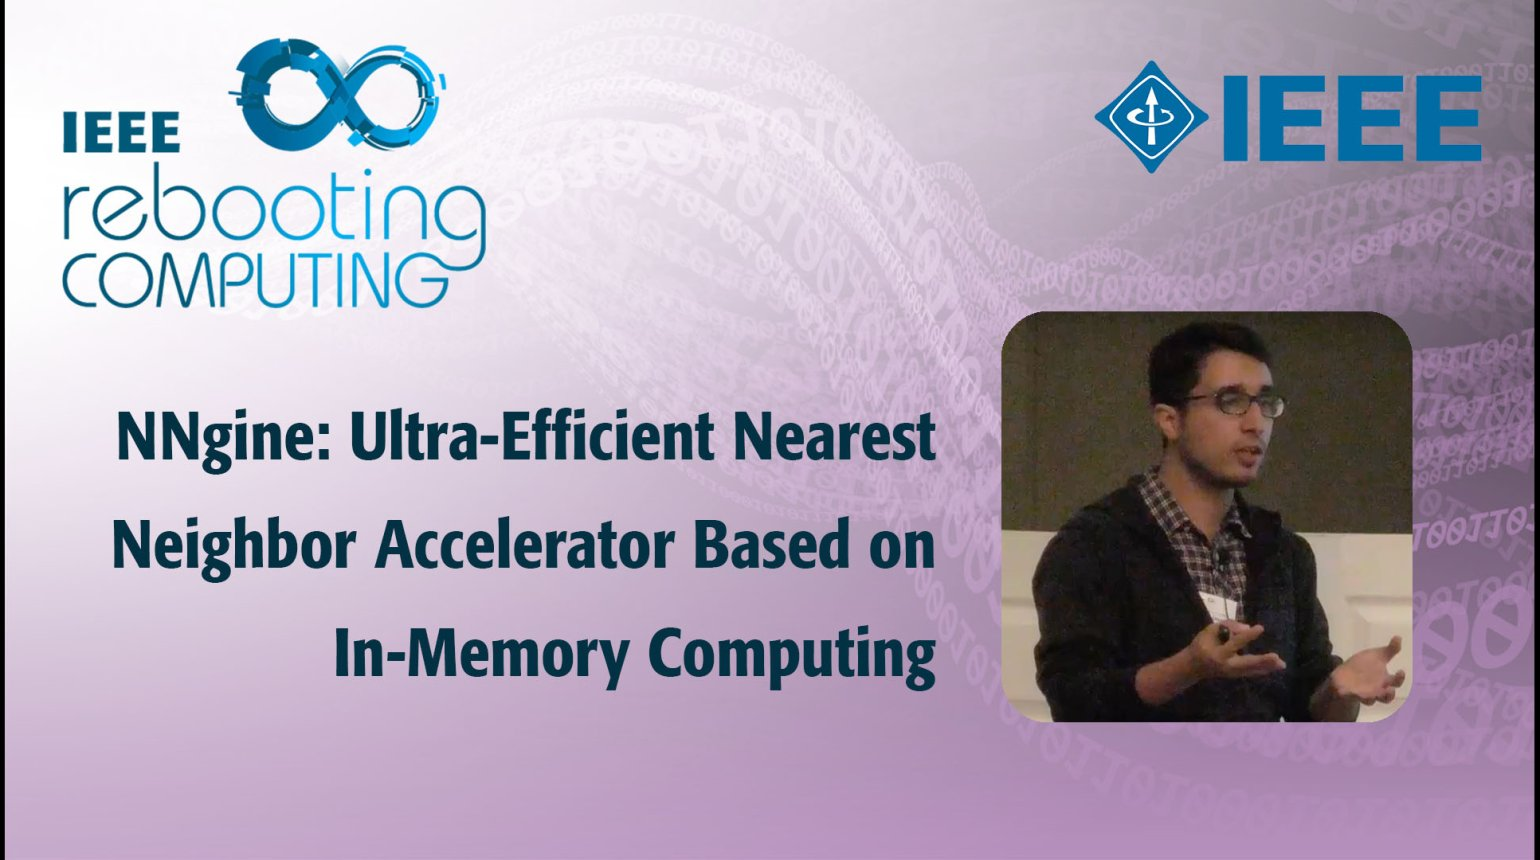 NNgine: Ultra-Efficient Nearest Neighbor Accelerator Based on In-Memory Computing: IEEE Rebooting Computing 2017